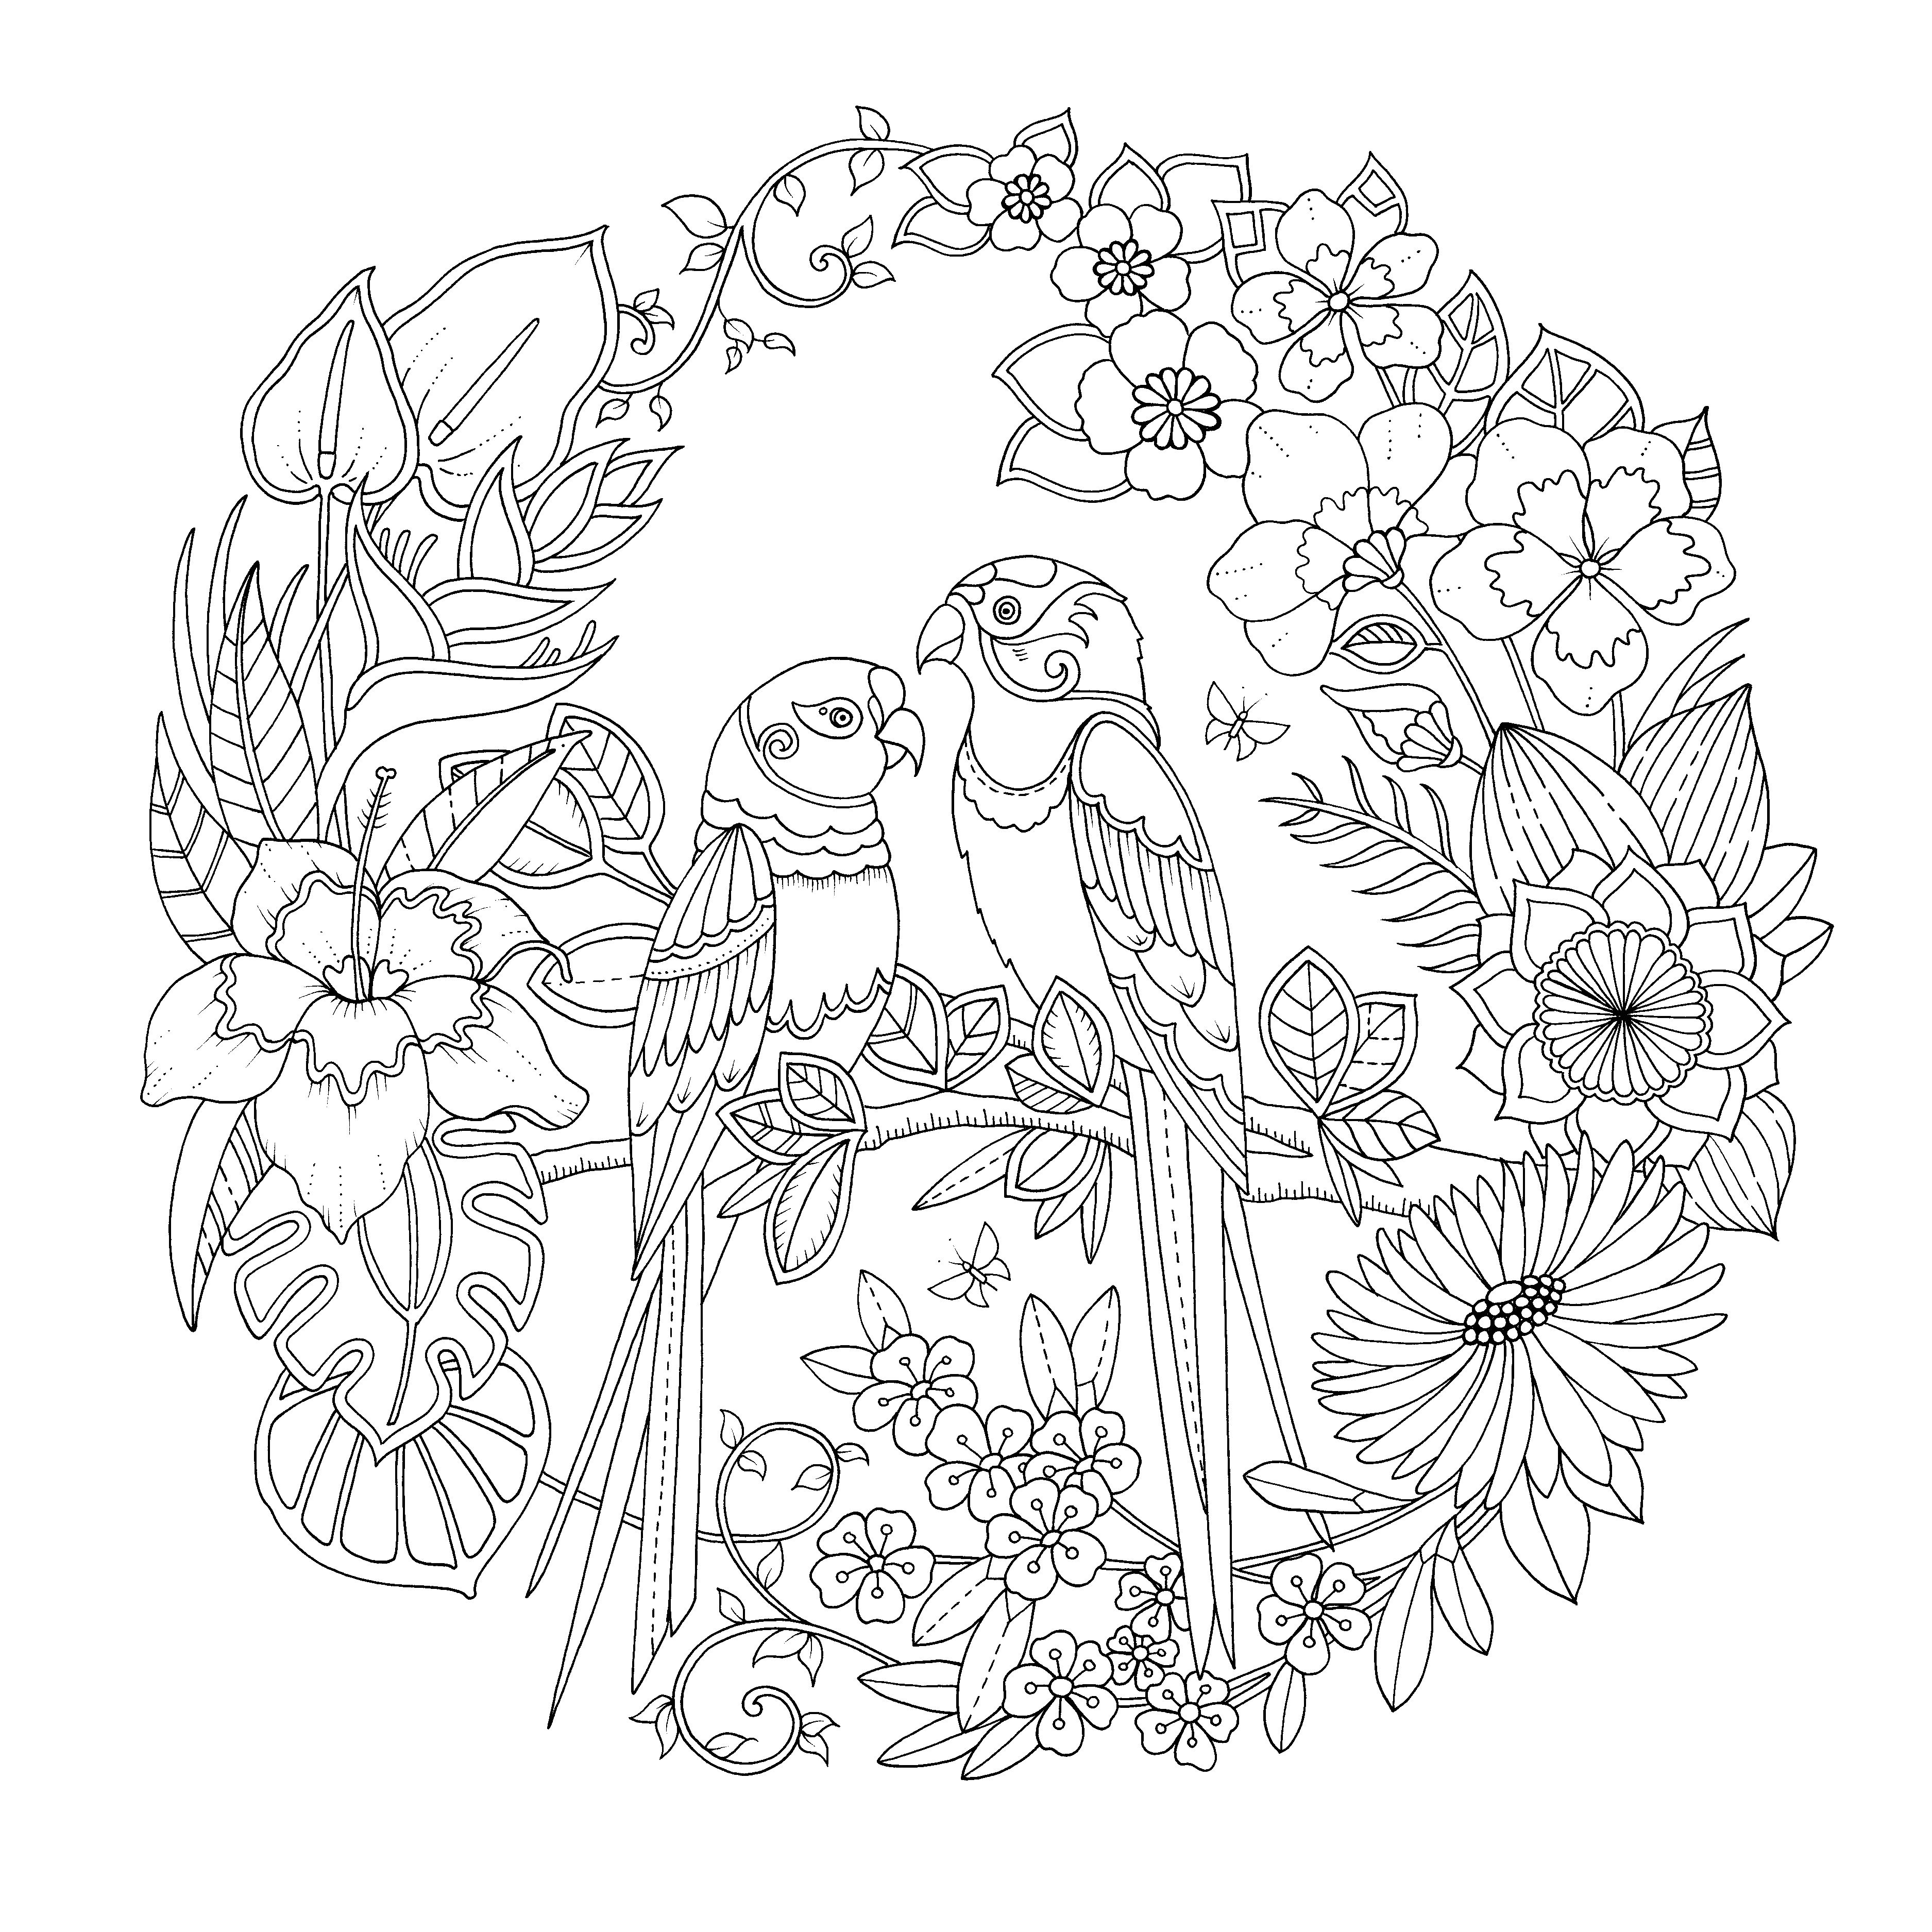 Jungle book colouring in pictures - Magical Jungle Basford Coloring Book